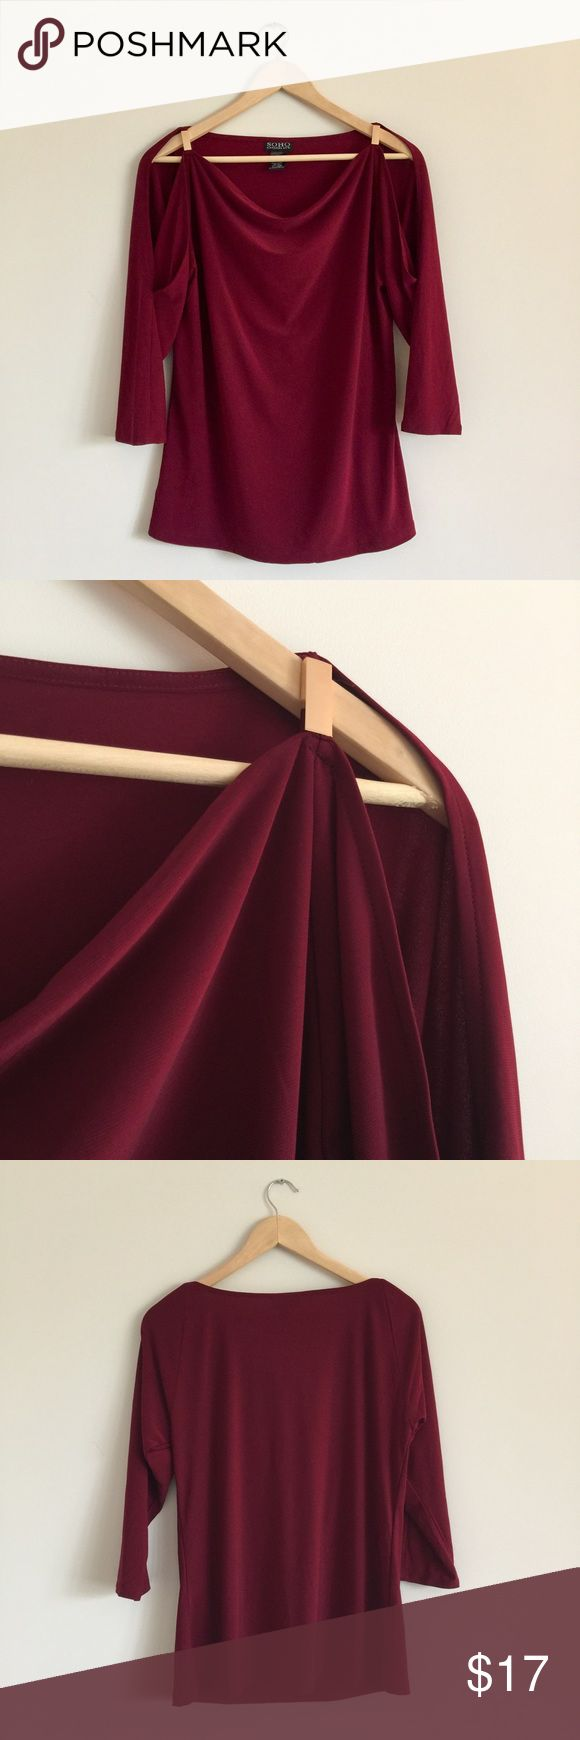 Cold shoulder long sleeve cowl neck top Burgundy red, long sleeve top with cold shoulder cut outs. Rose gold bar detail at shoulder. Size M. Excellent condition worn once Tops